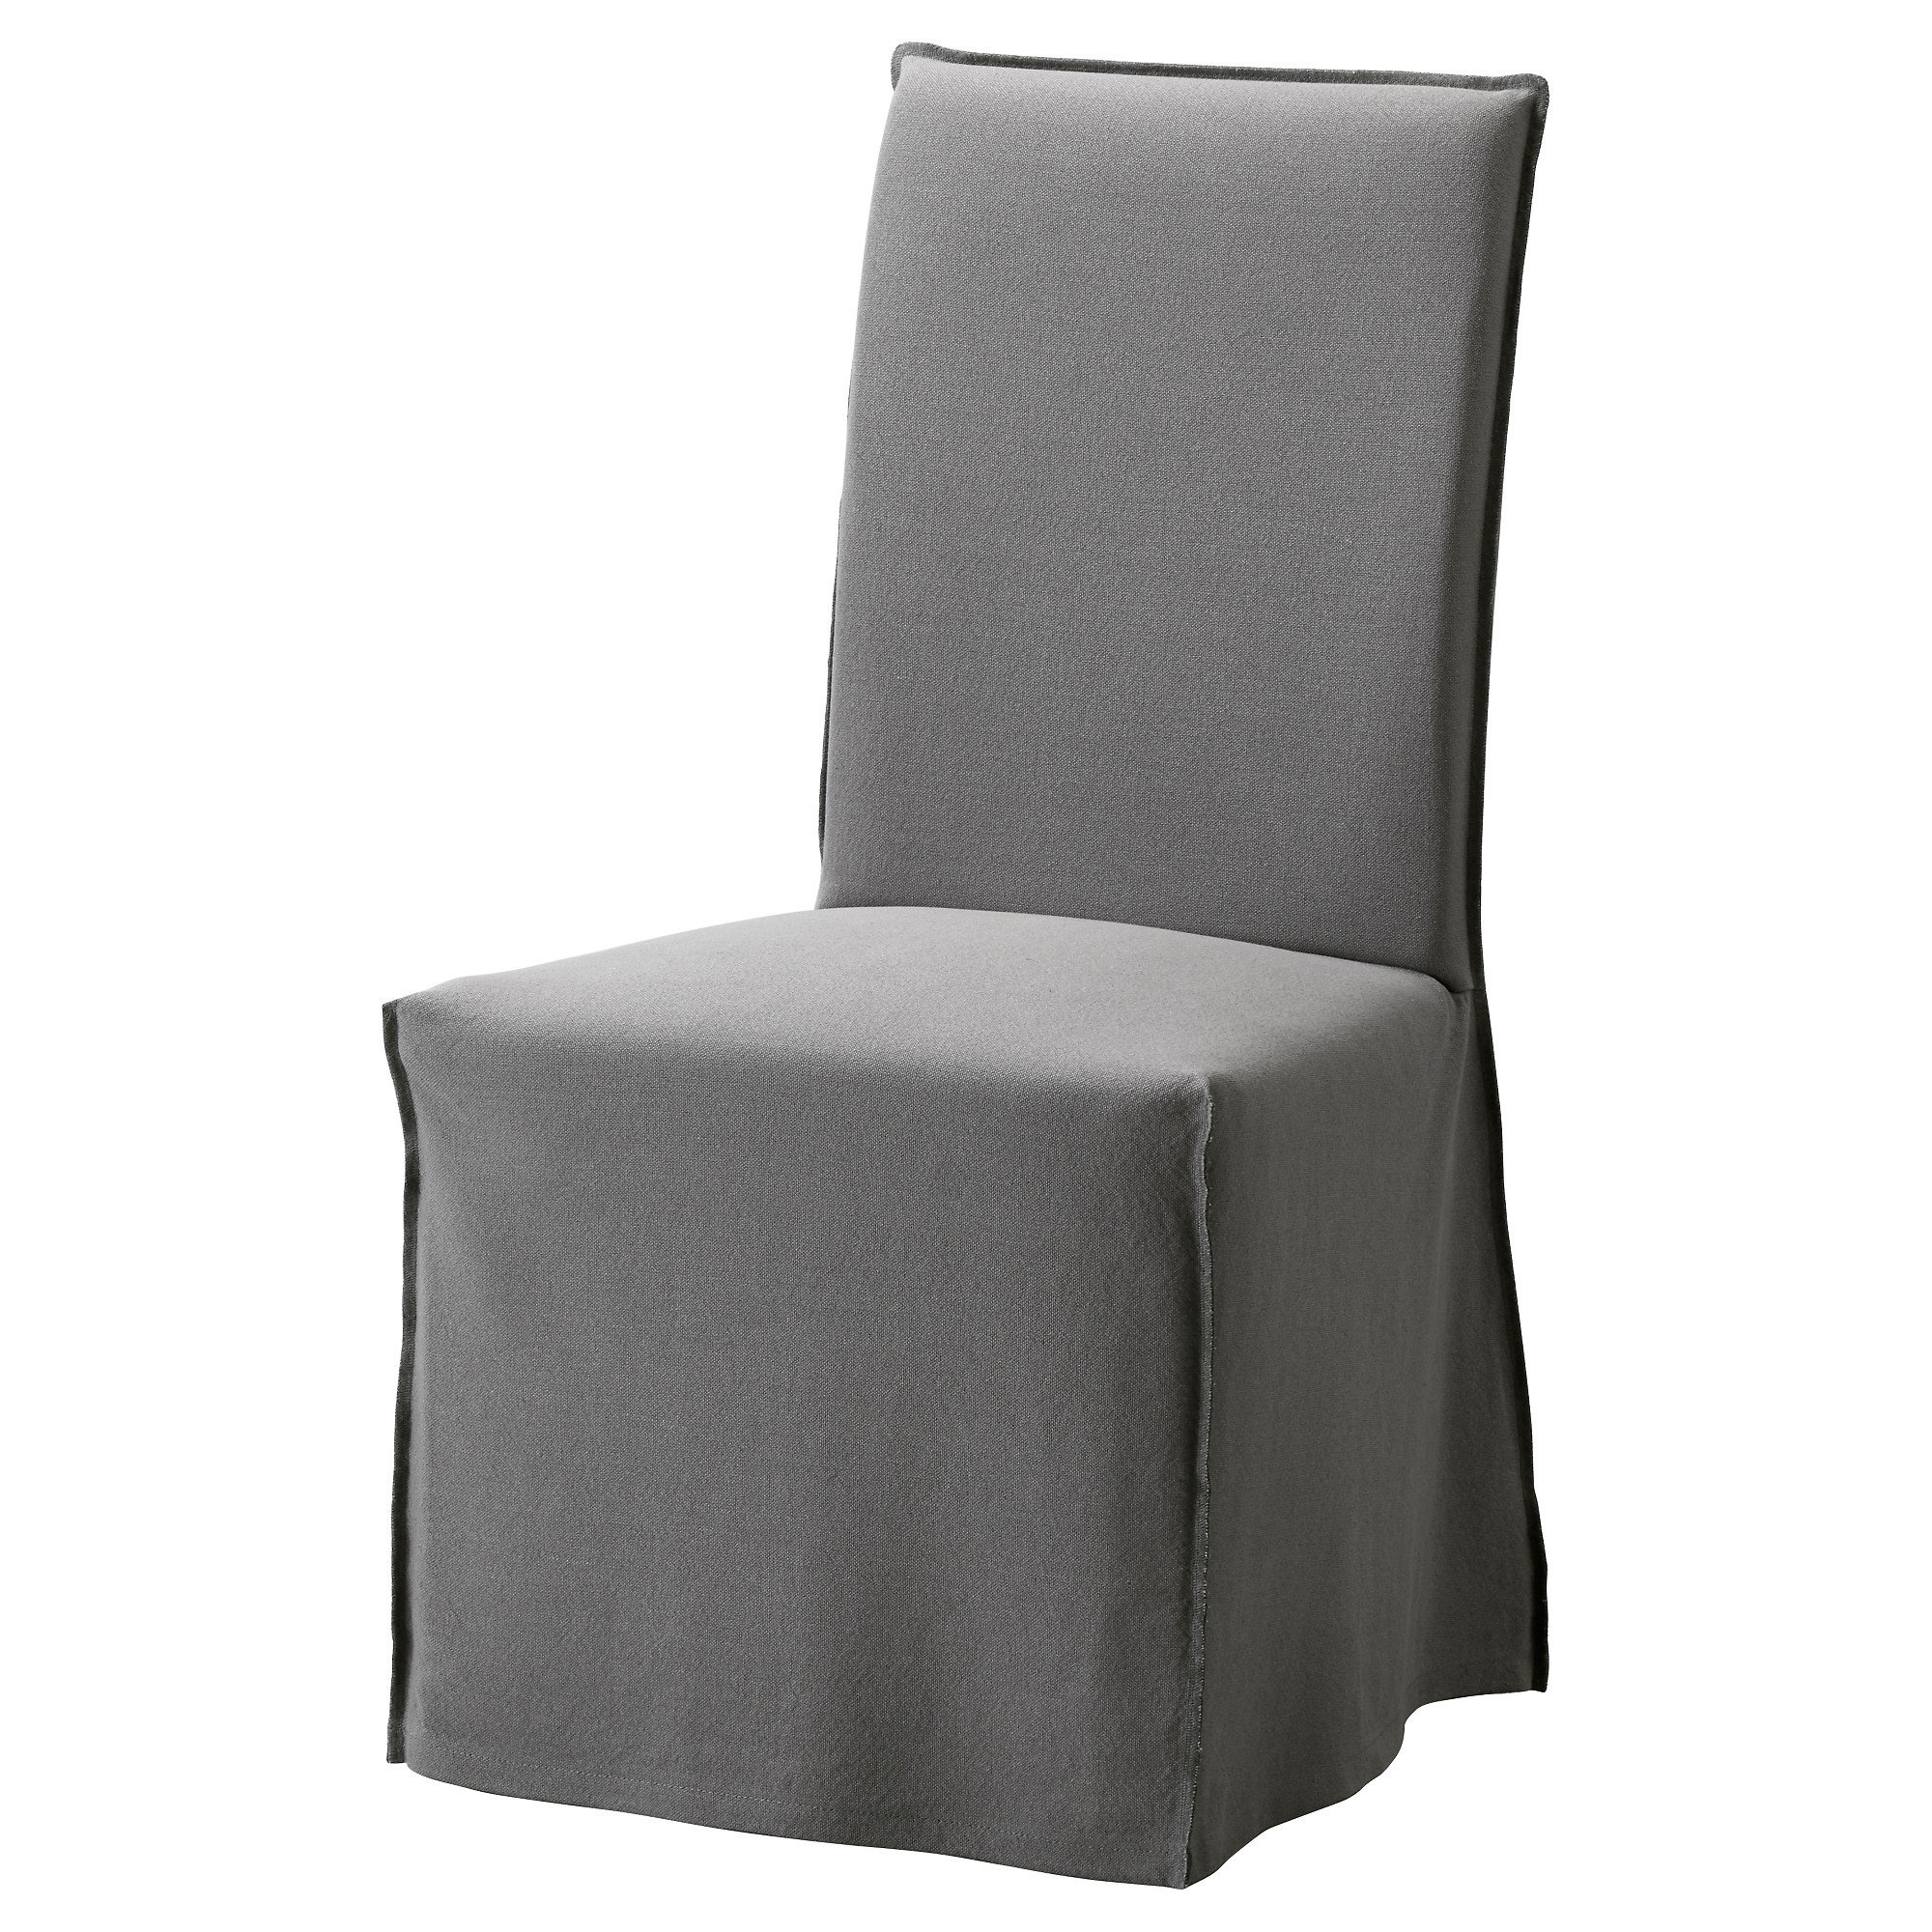 HENRIKSDAL Chair Cover Long Risane Gray Seat Width 21